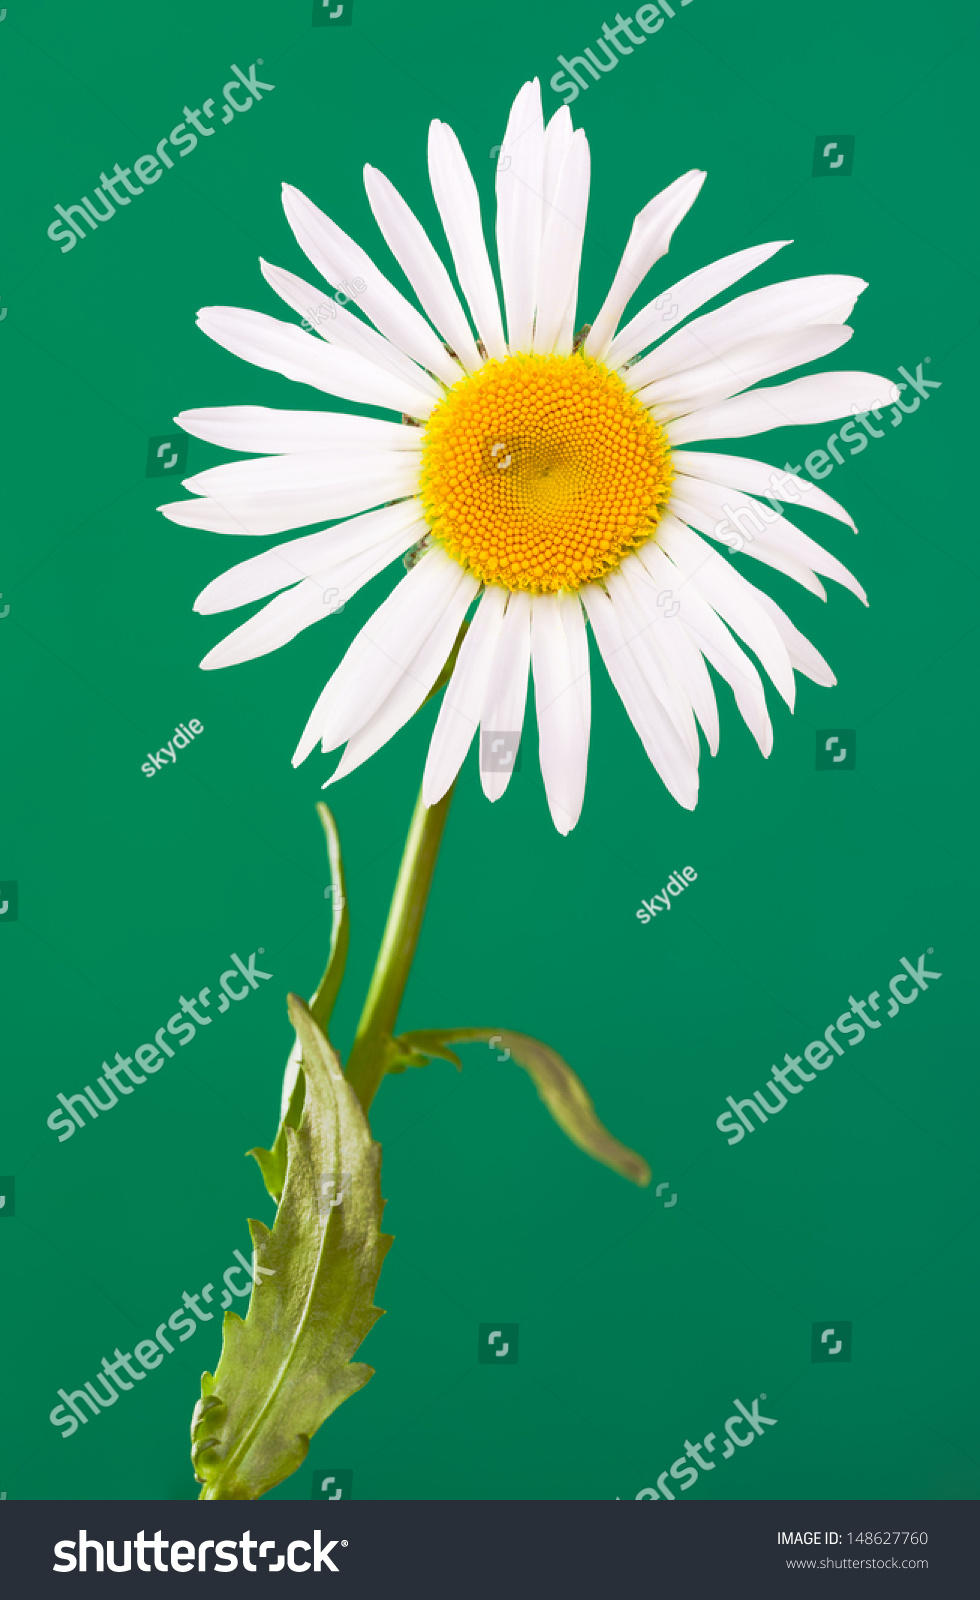 Daisylike flower species flowering plant aster stock photo 148627760 the daisy like flower is a species of flowering plant in the aster family known izmirmasajfo